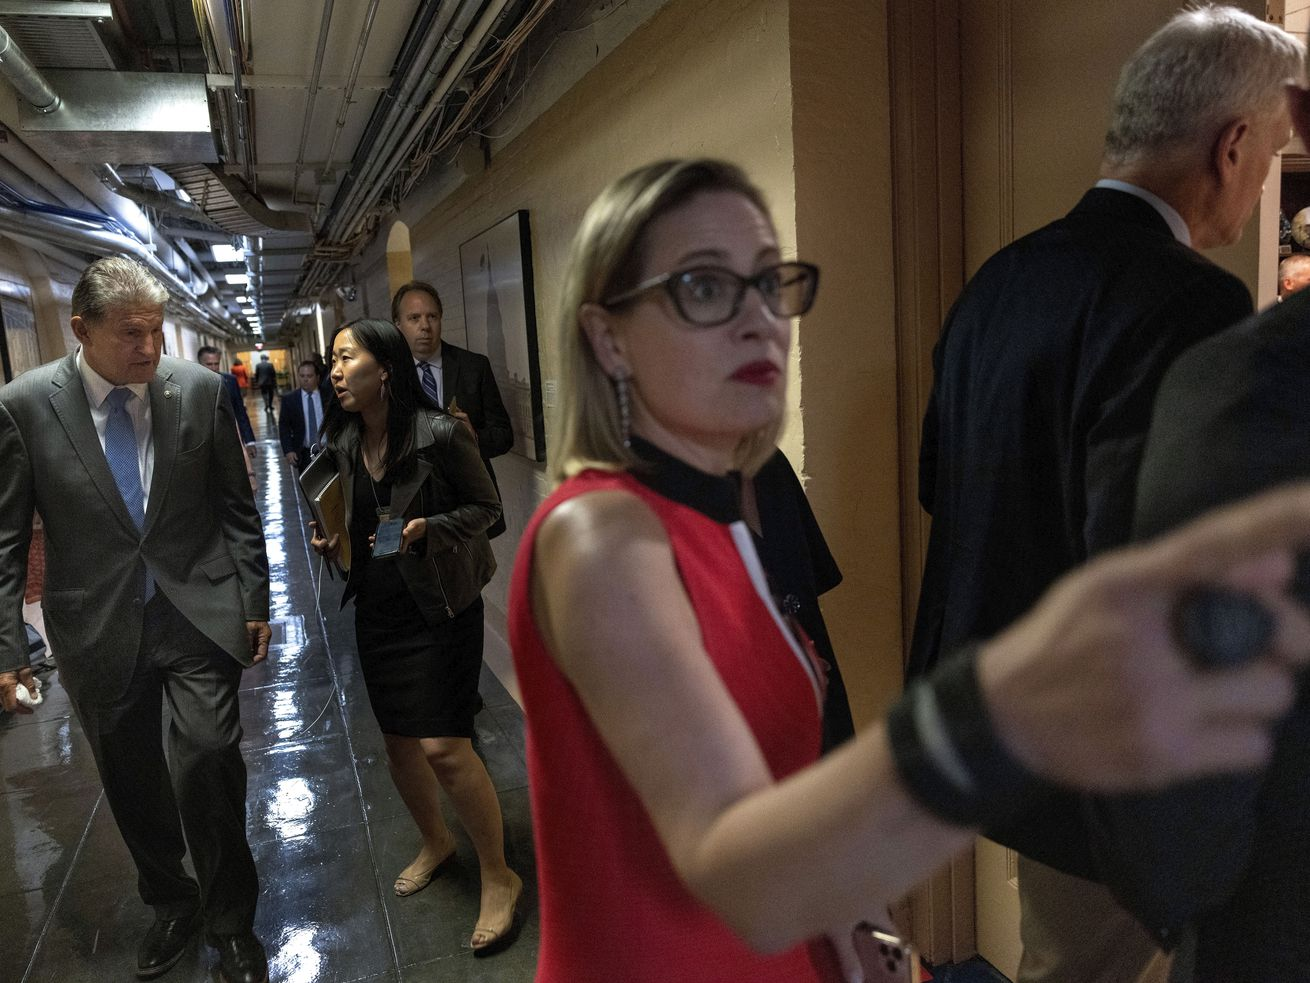 Sens. Kyrsten Sinema (D-AZ) (R) and Joe Manchin (D-WV) arrive for a bipartisan meeting on infrastructure after original talks fell through with the White House on June 08, 2021 in Washington, DC.